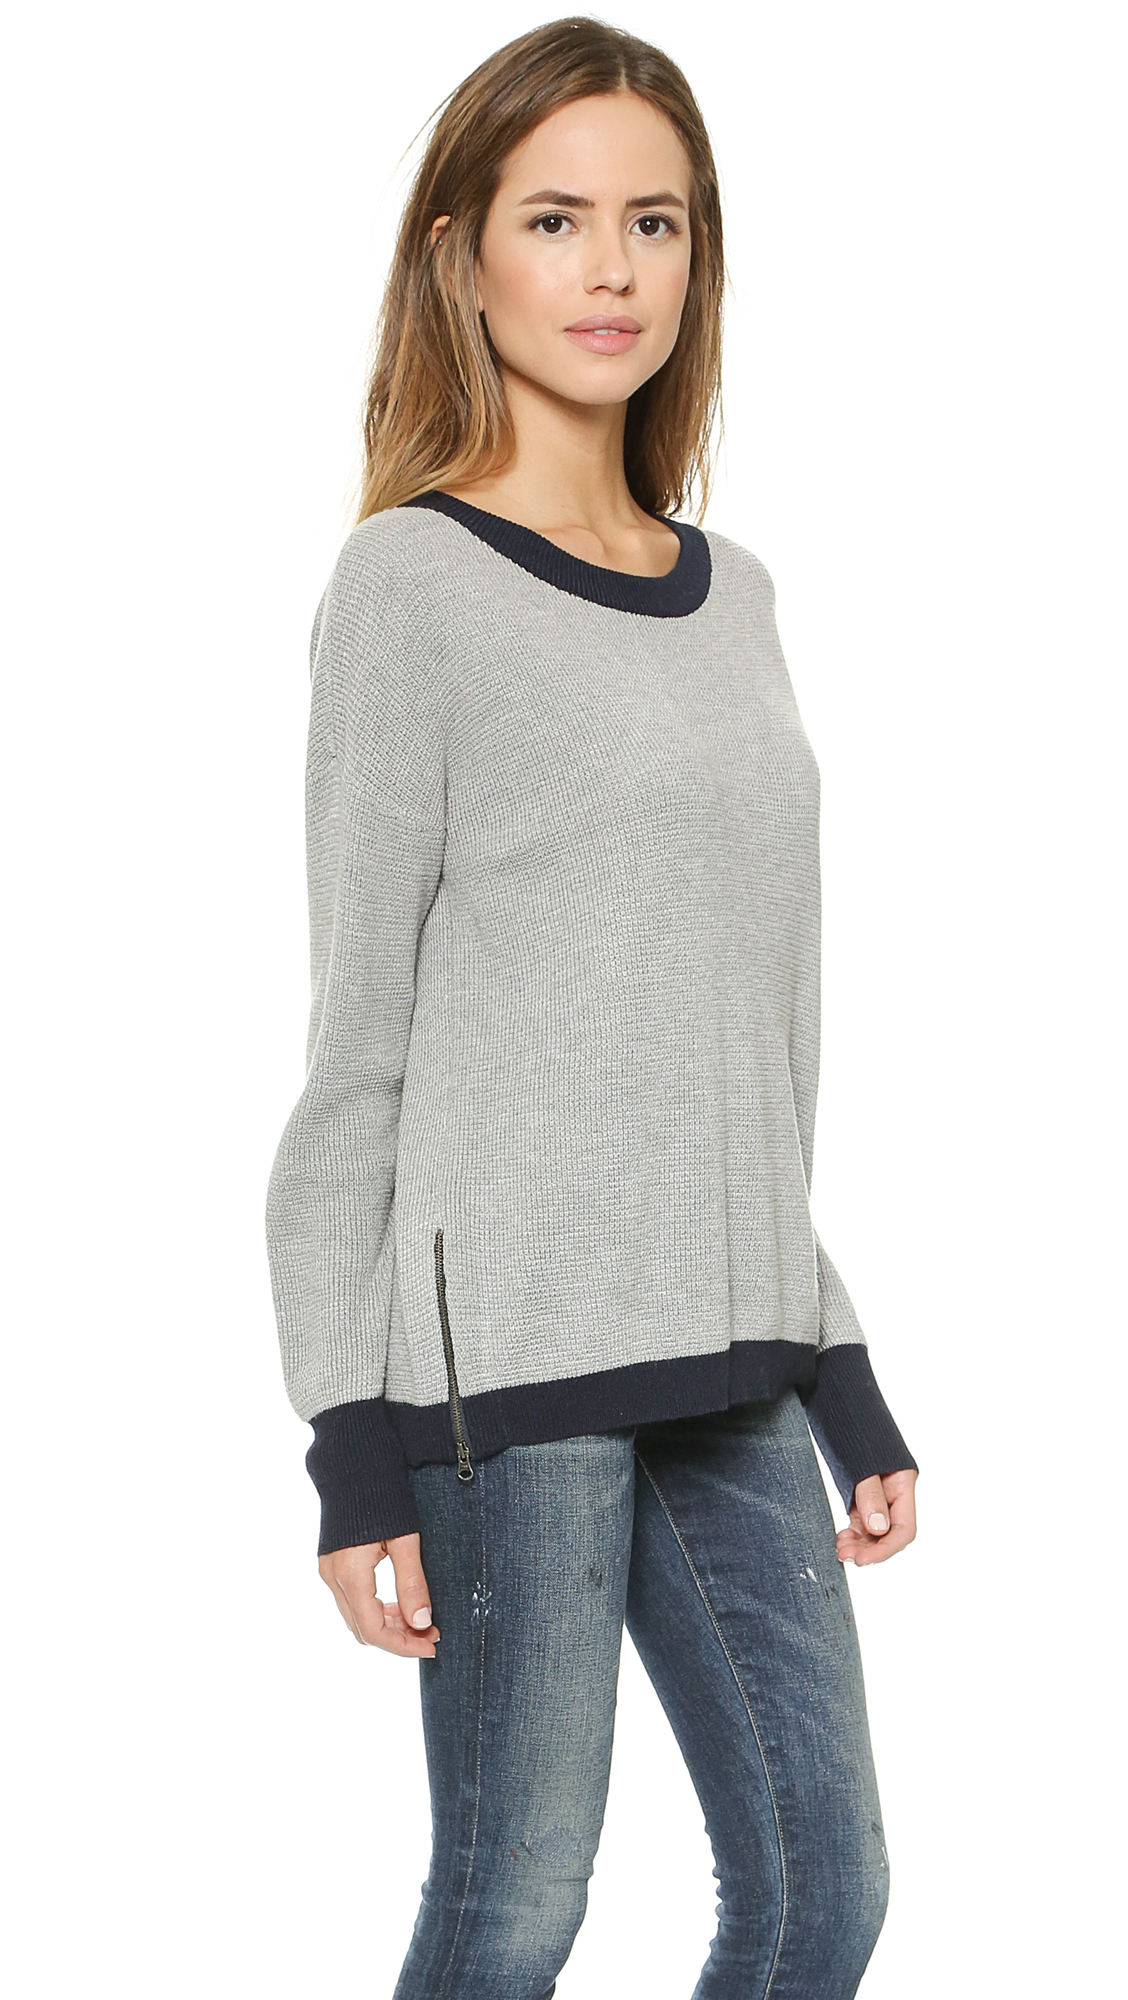 Feel the piece Cece Sweater - Heather Grey/navy in Gray | Lyst